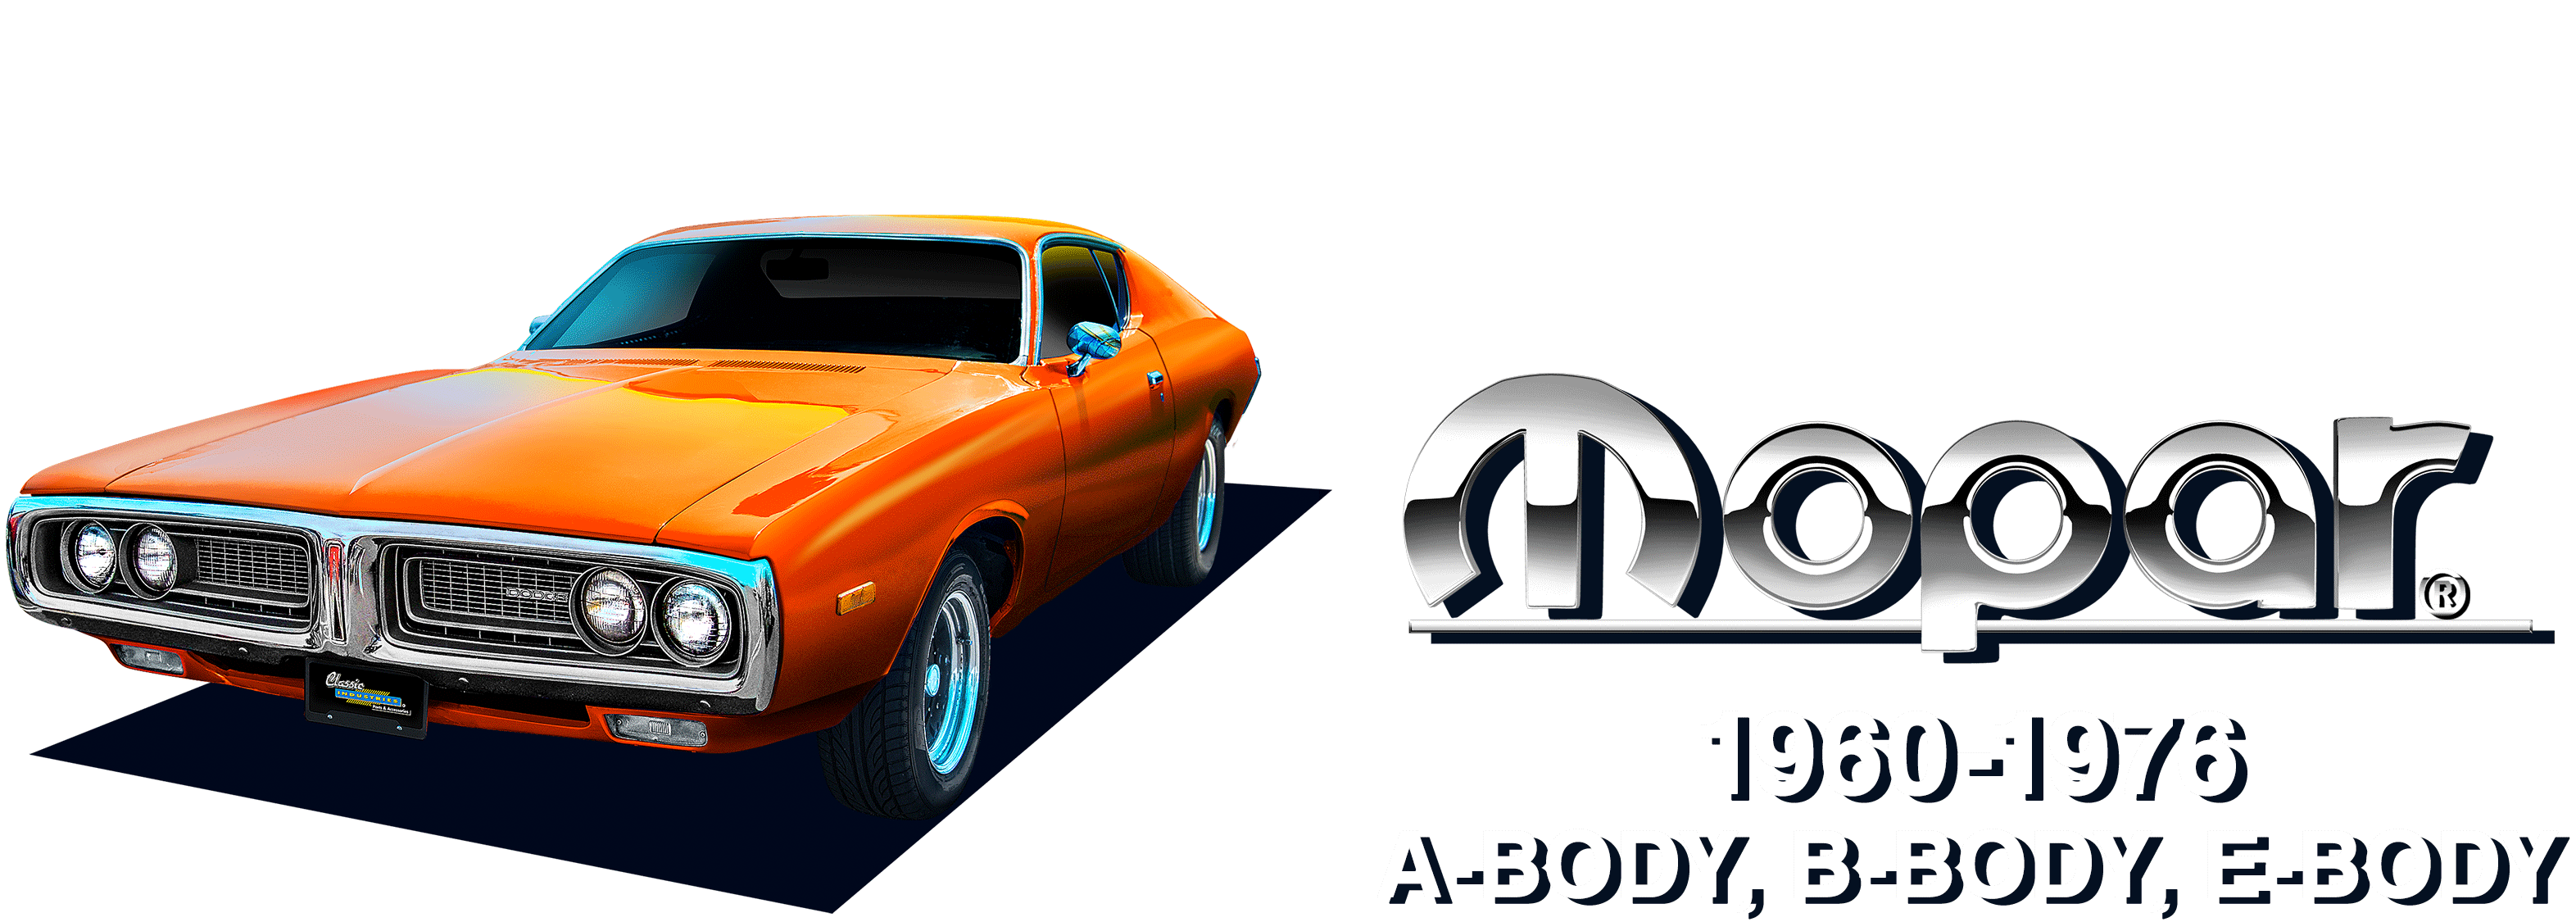 medium resolution of mopar 1960 1976 a body b body e body